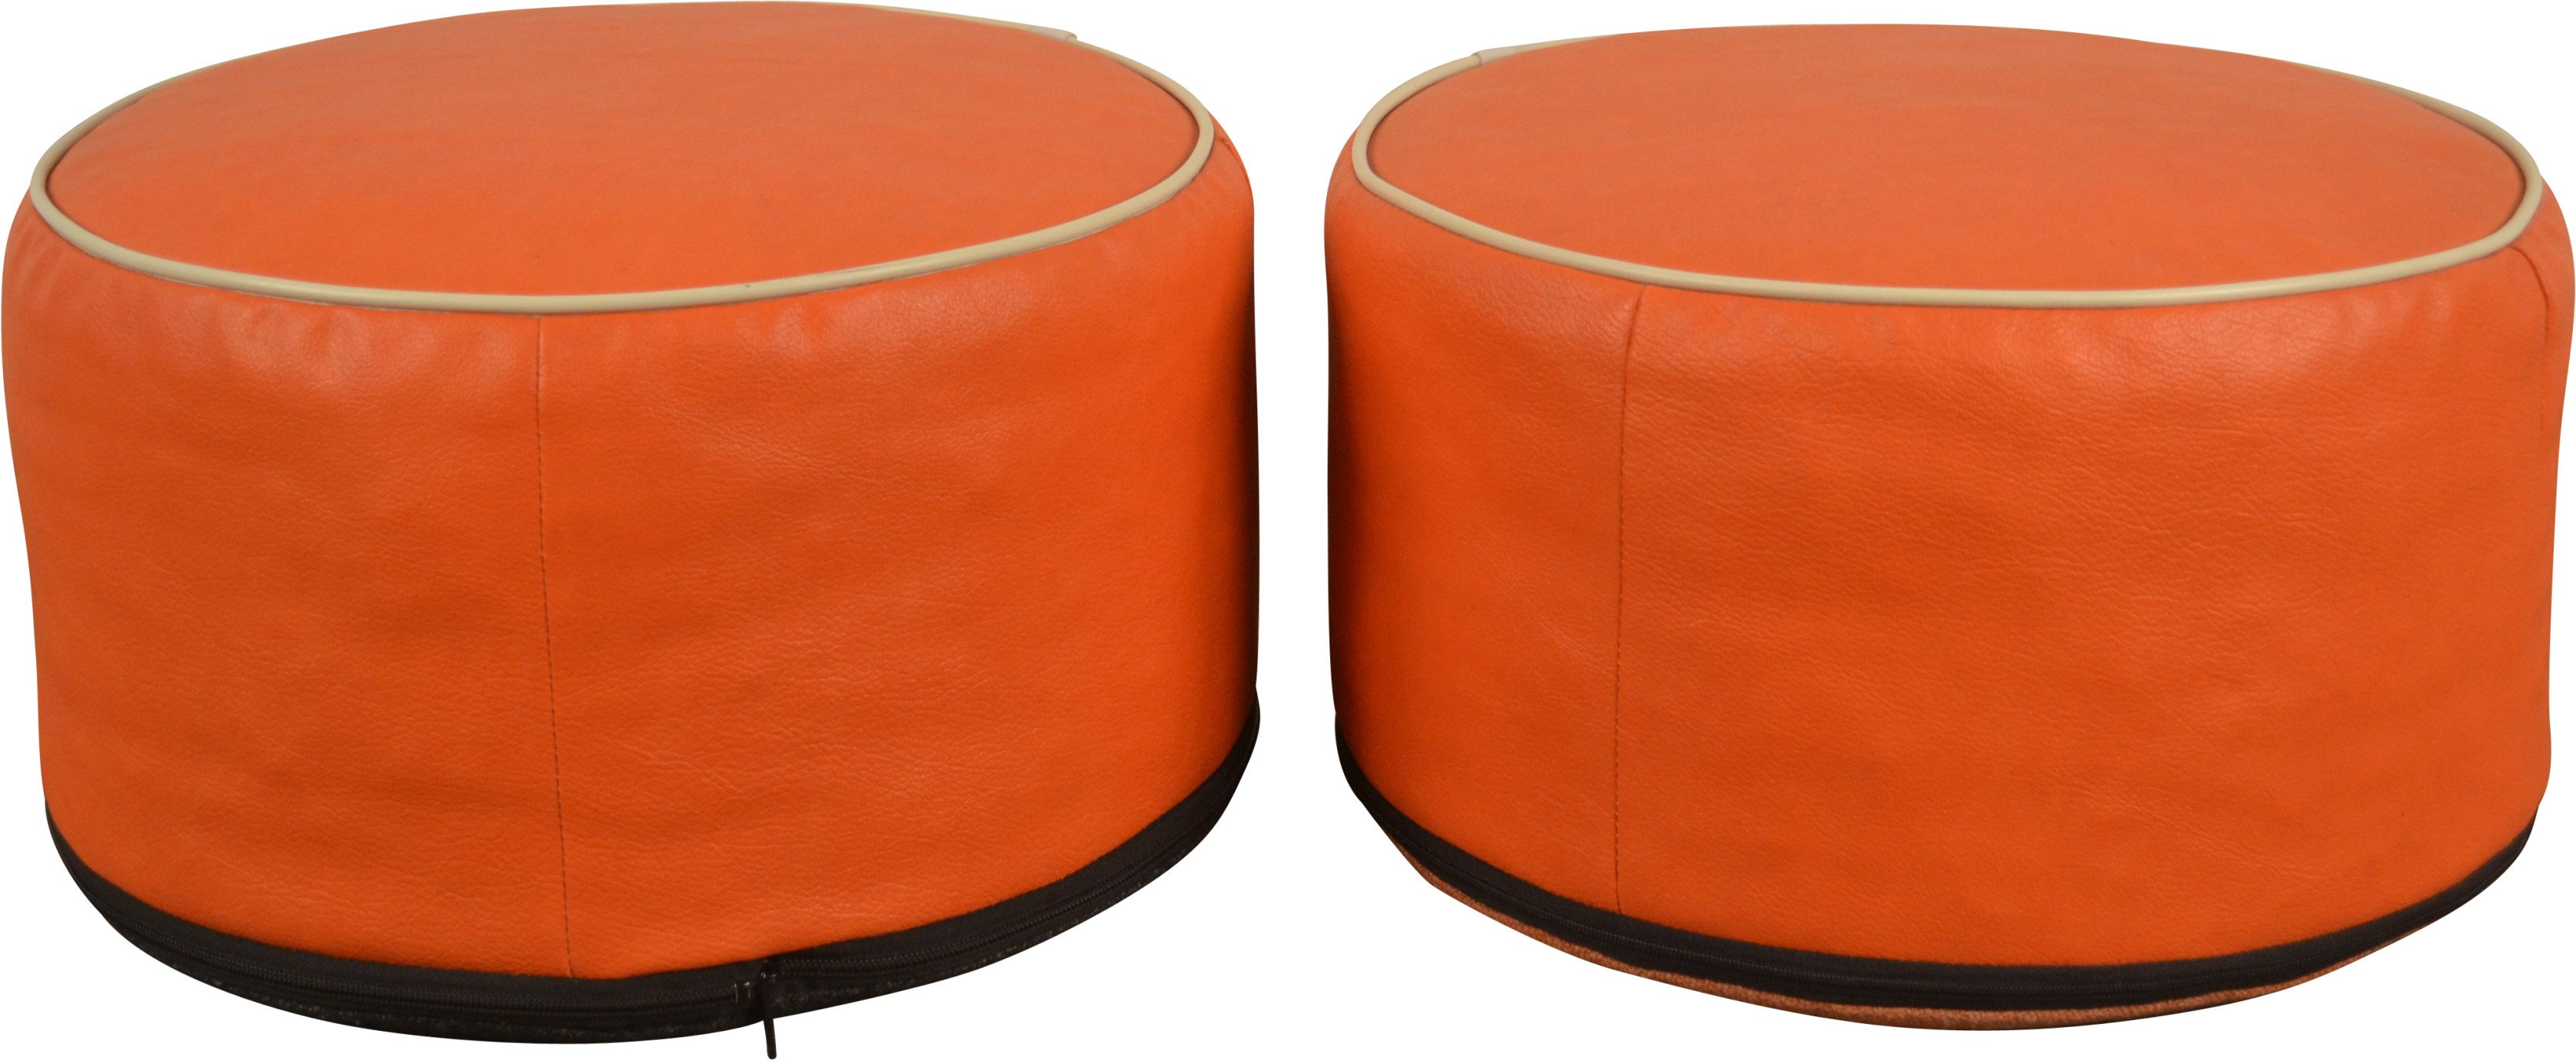 Pair of Pouf, Netherlands,  1970s